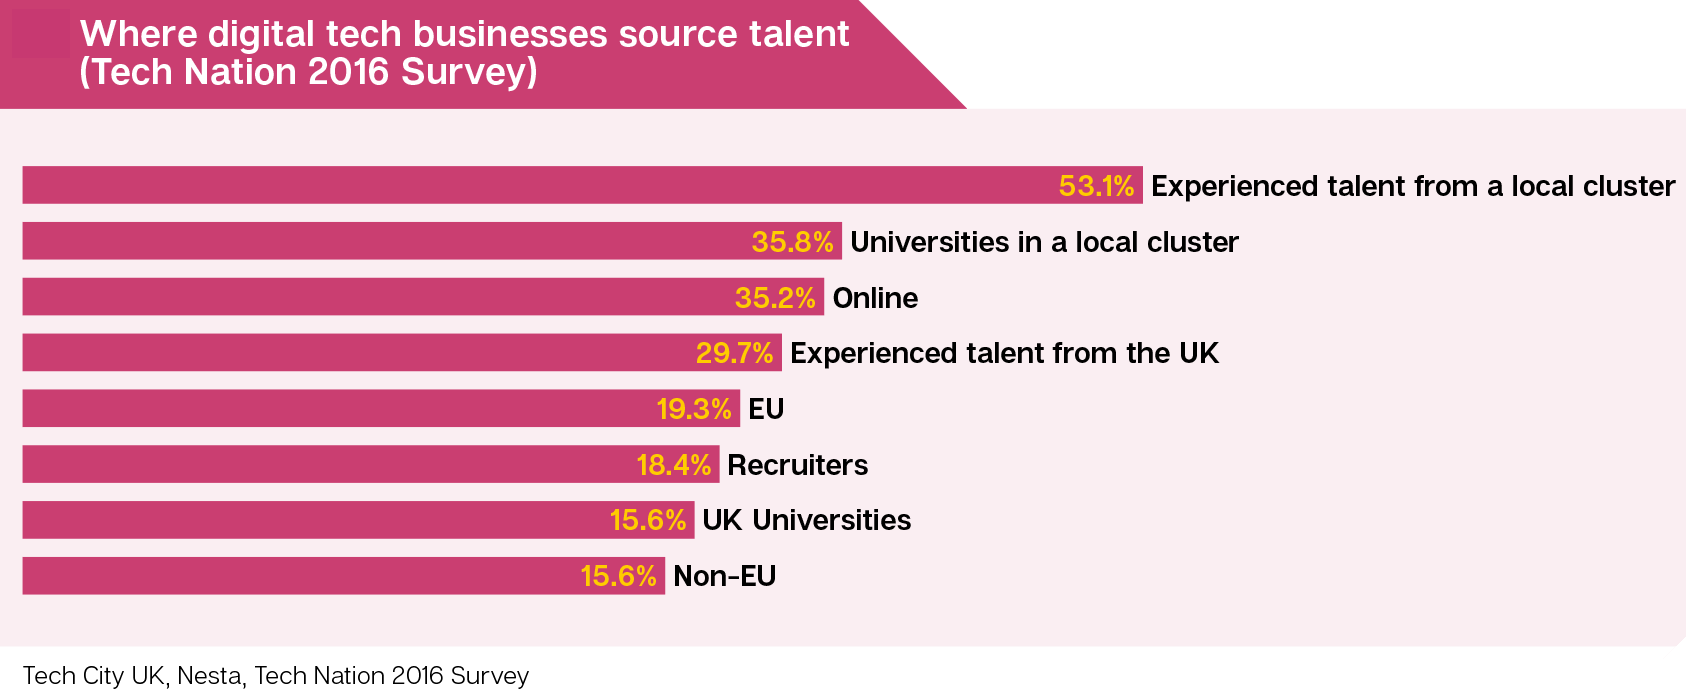 53.1% of digital tech businesses source talent from a local cluster